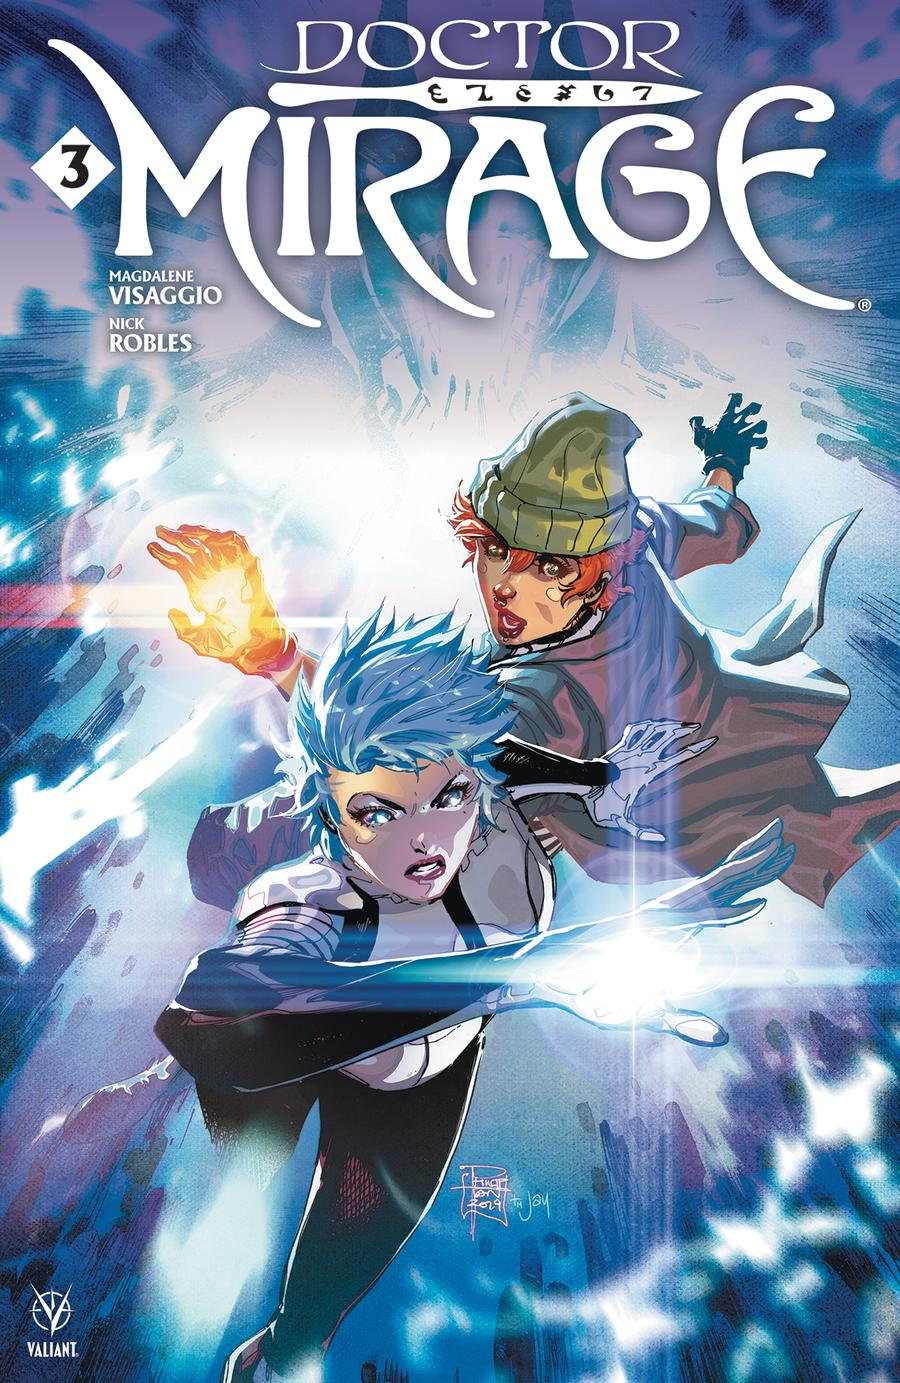 Doctor Mirage #3 Cover A Regular Philip Tan Cover